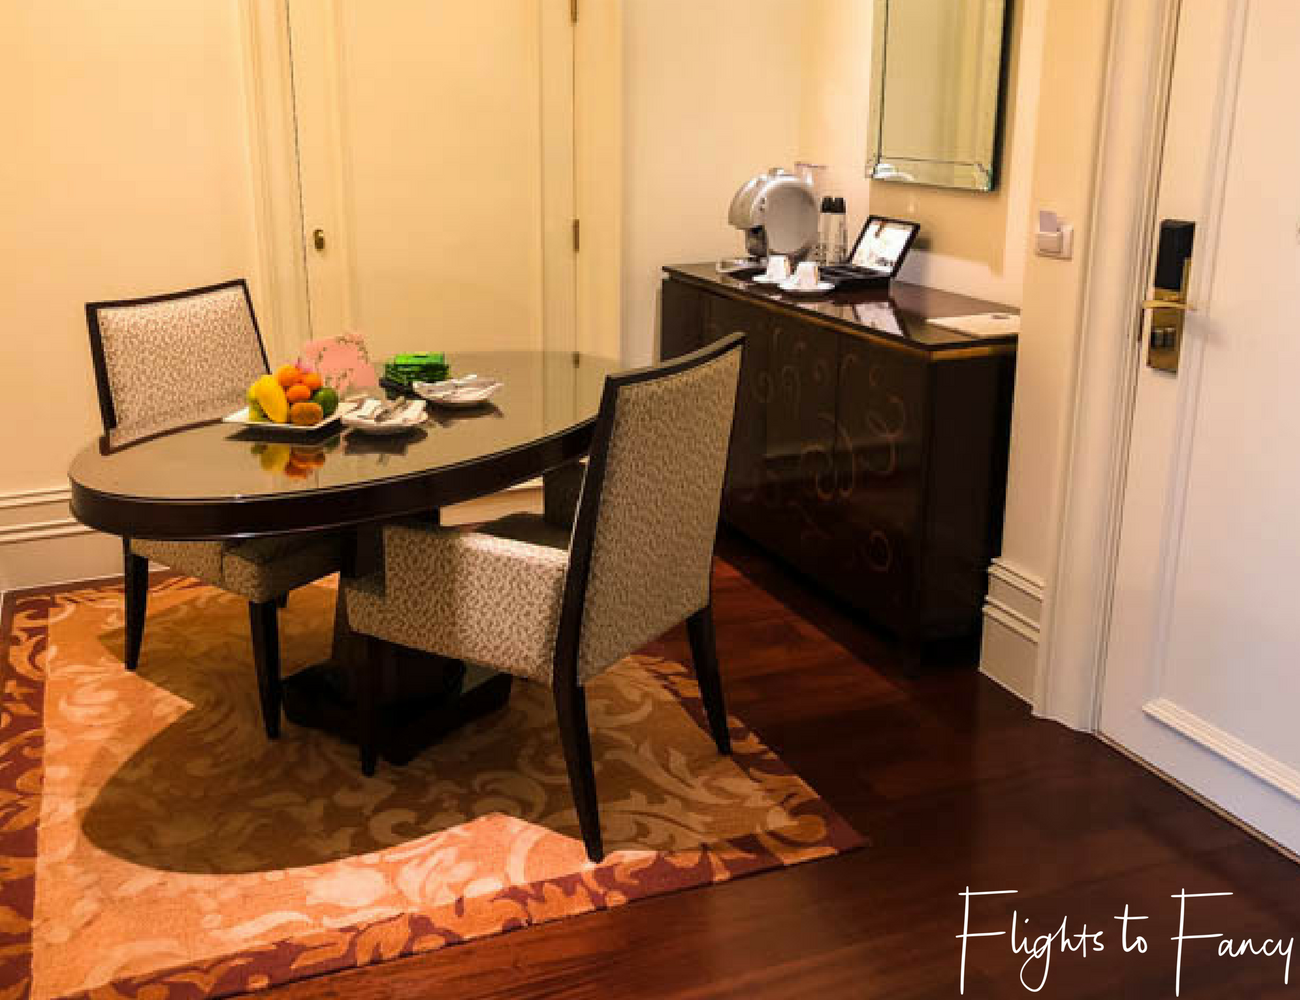 Flights To Fancy at Raffles Manila - One of my favourite hotels on Makati Ave